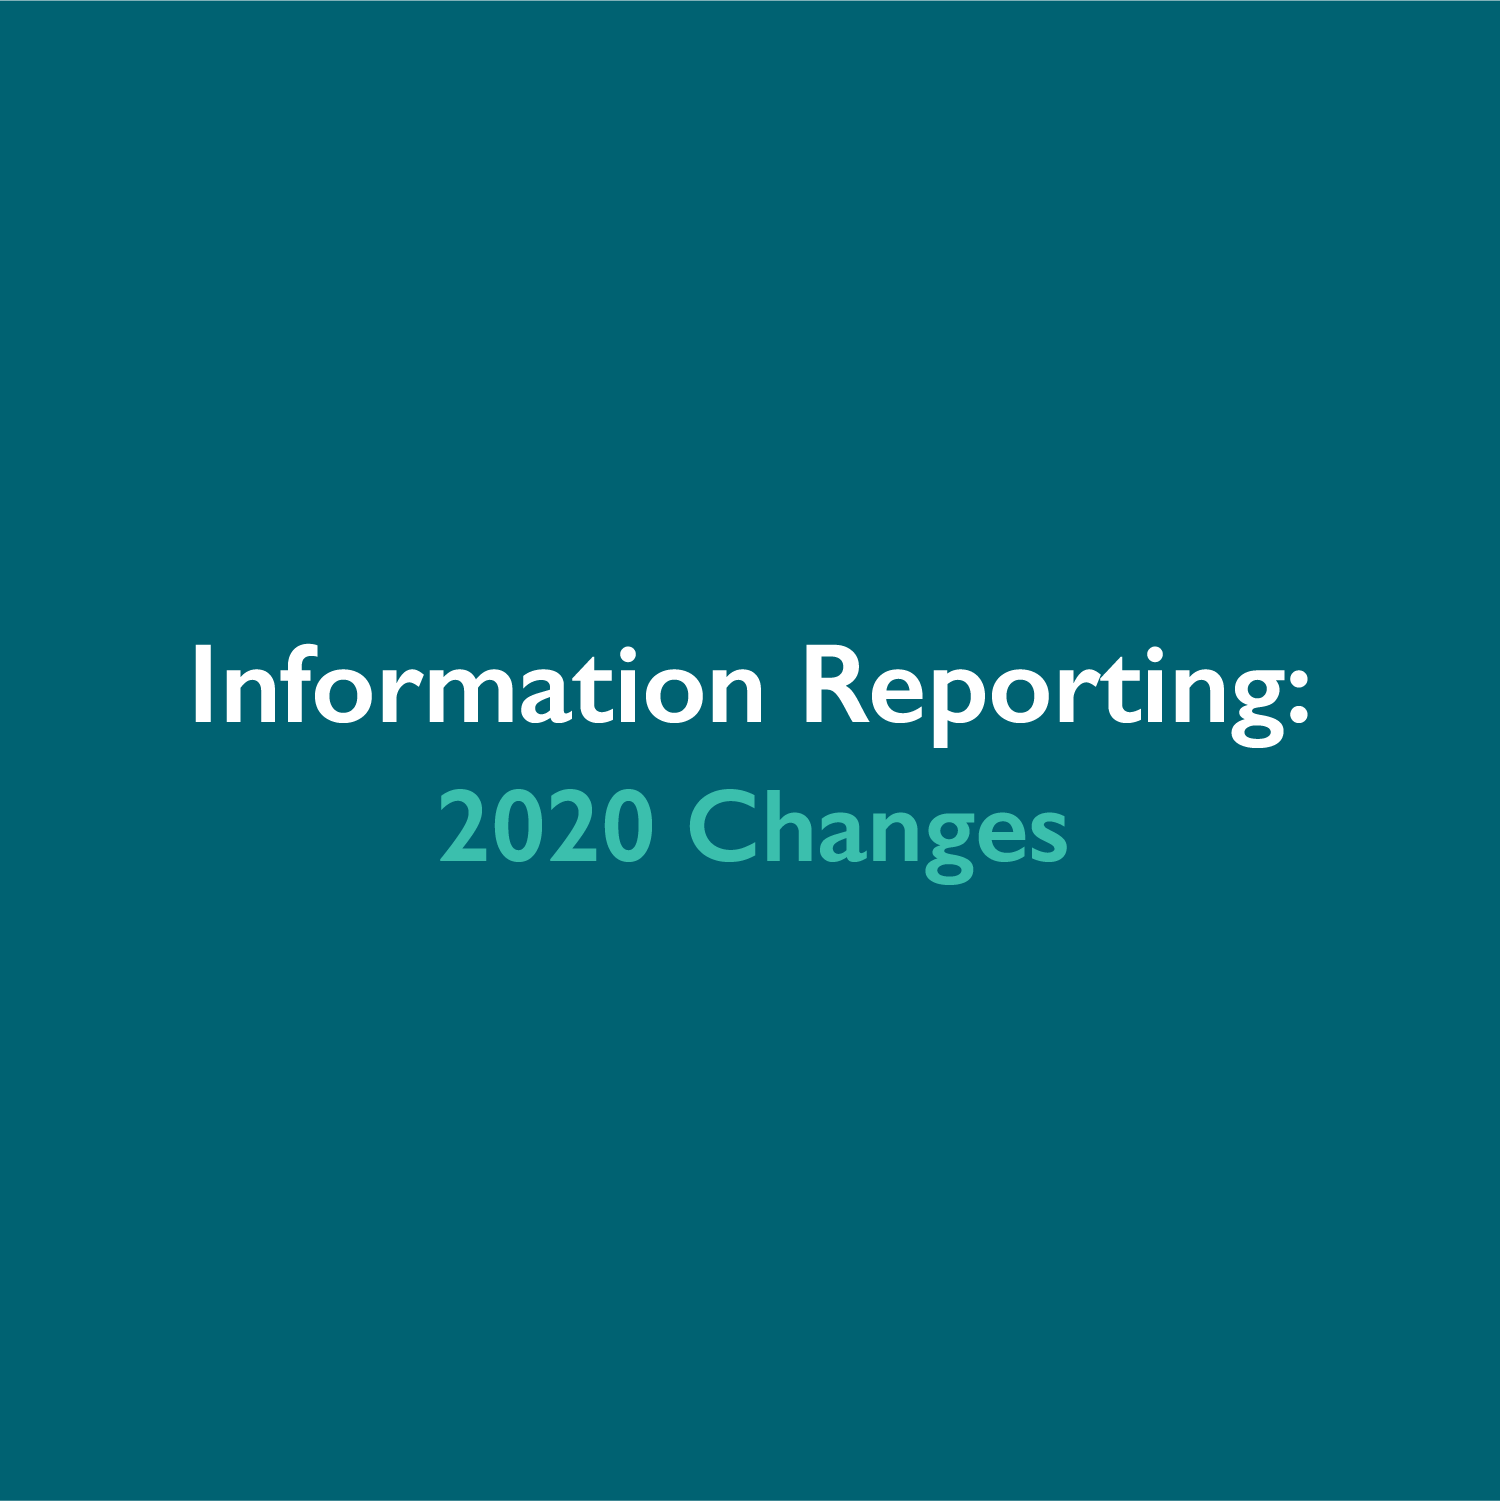 New Forms 1099-NEC & 1099-MISC and Other Information Reporting Changes for 2020